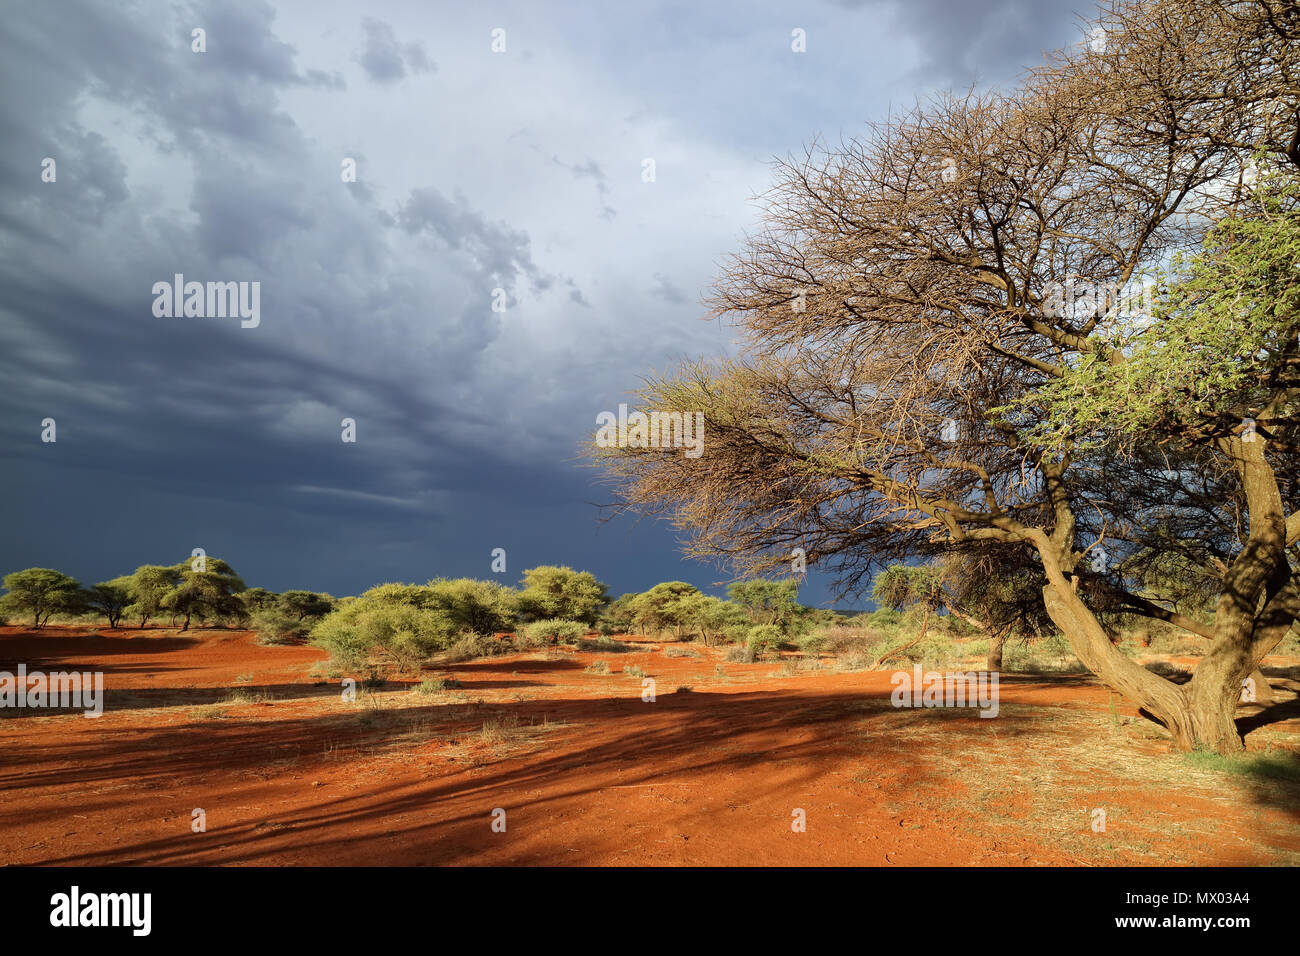 African savannah landscape against a dark sky of an approaching storm, South Africa Stock Photo